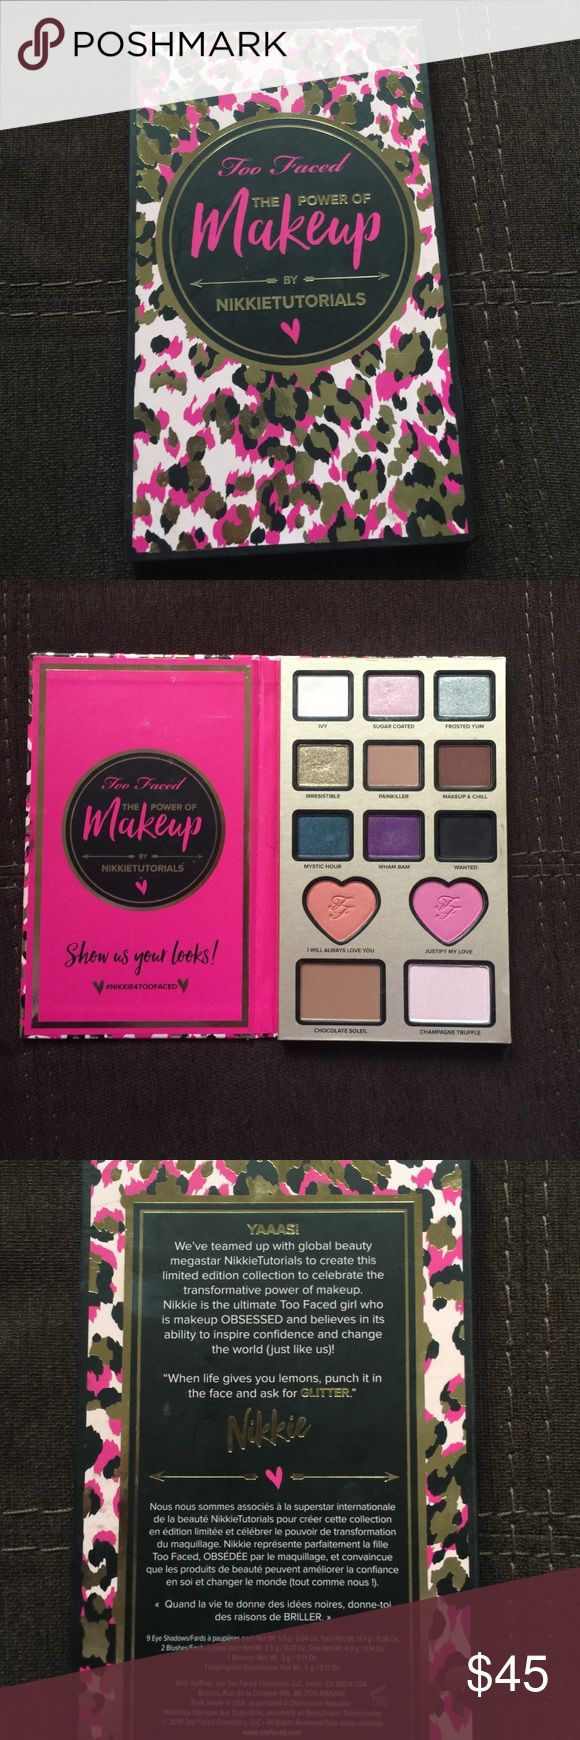 Too faced nikkie tutorials palette Sent to me by the company I do not have the box or glitter just the palette I don't reach out to it rather some one else enjoy it Makeup Eyeshadow